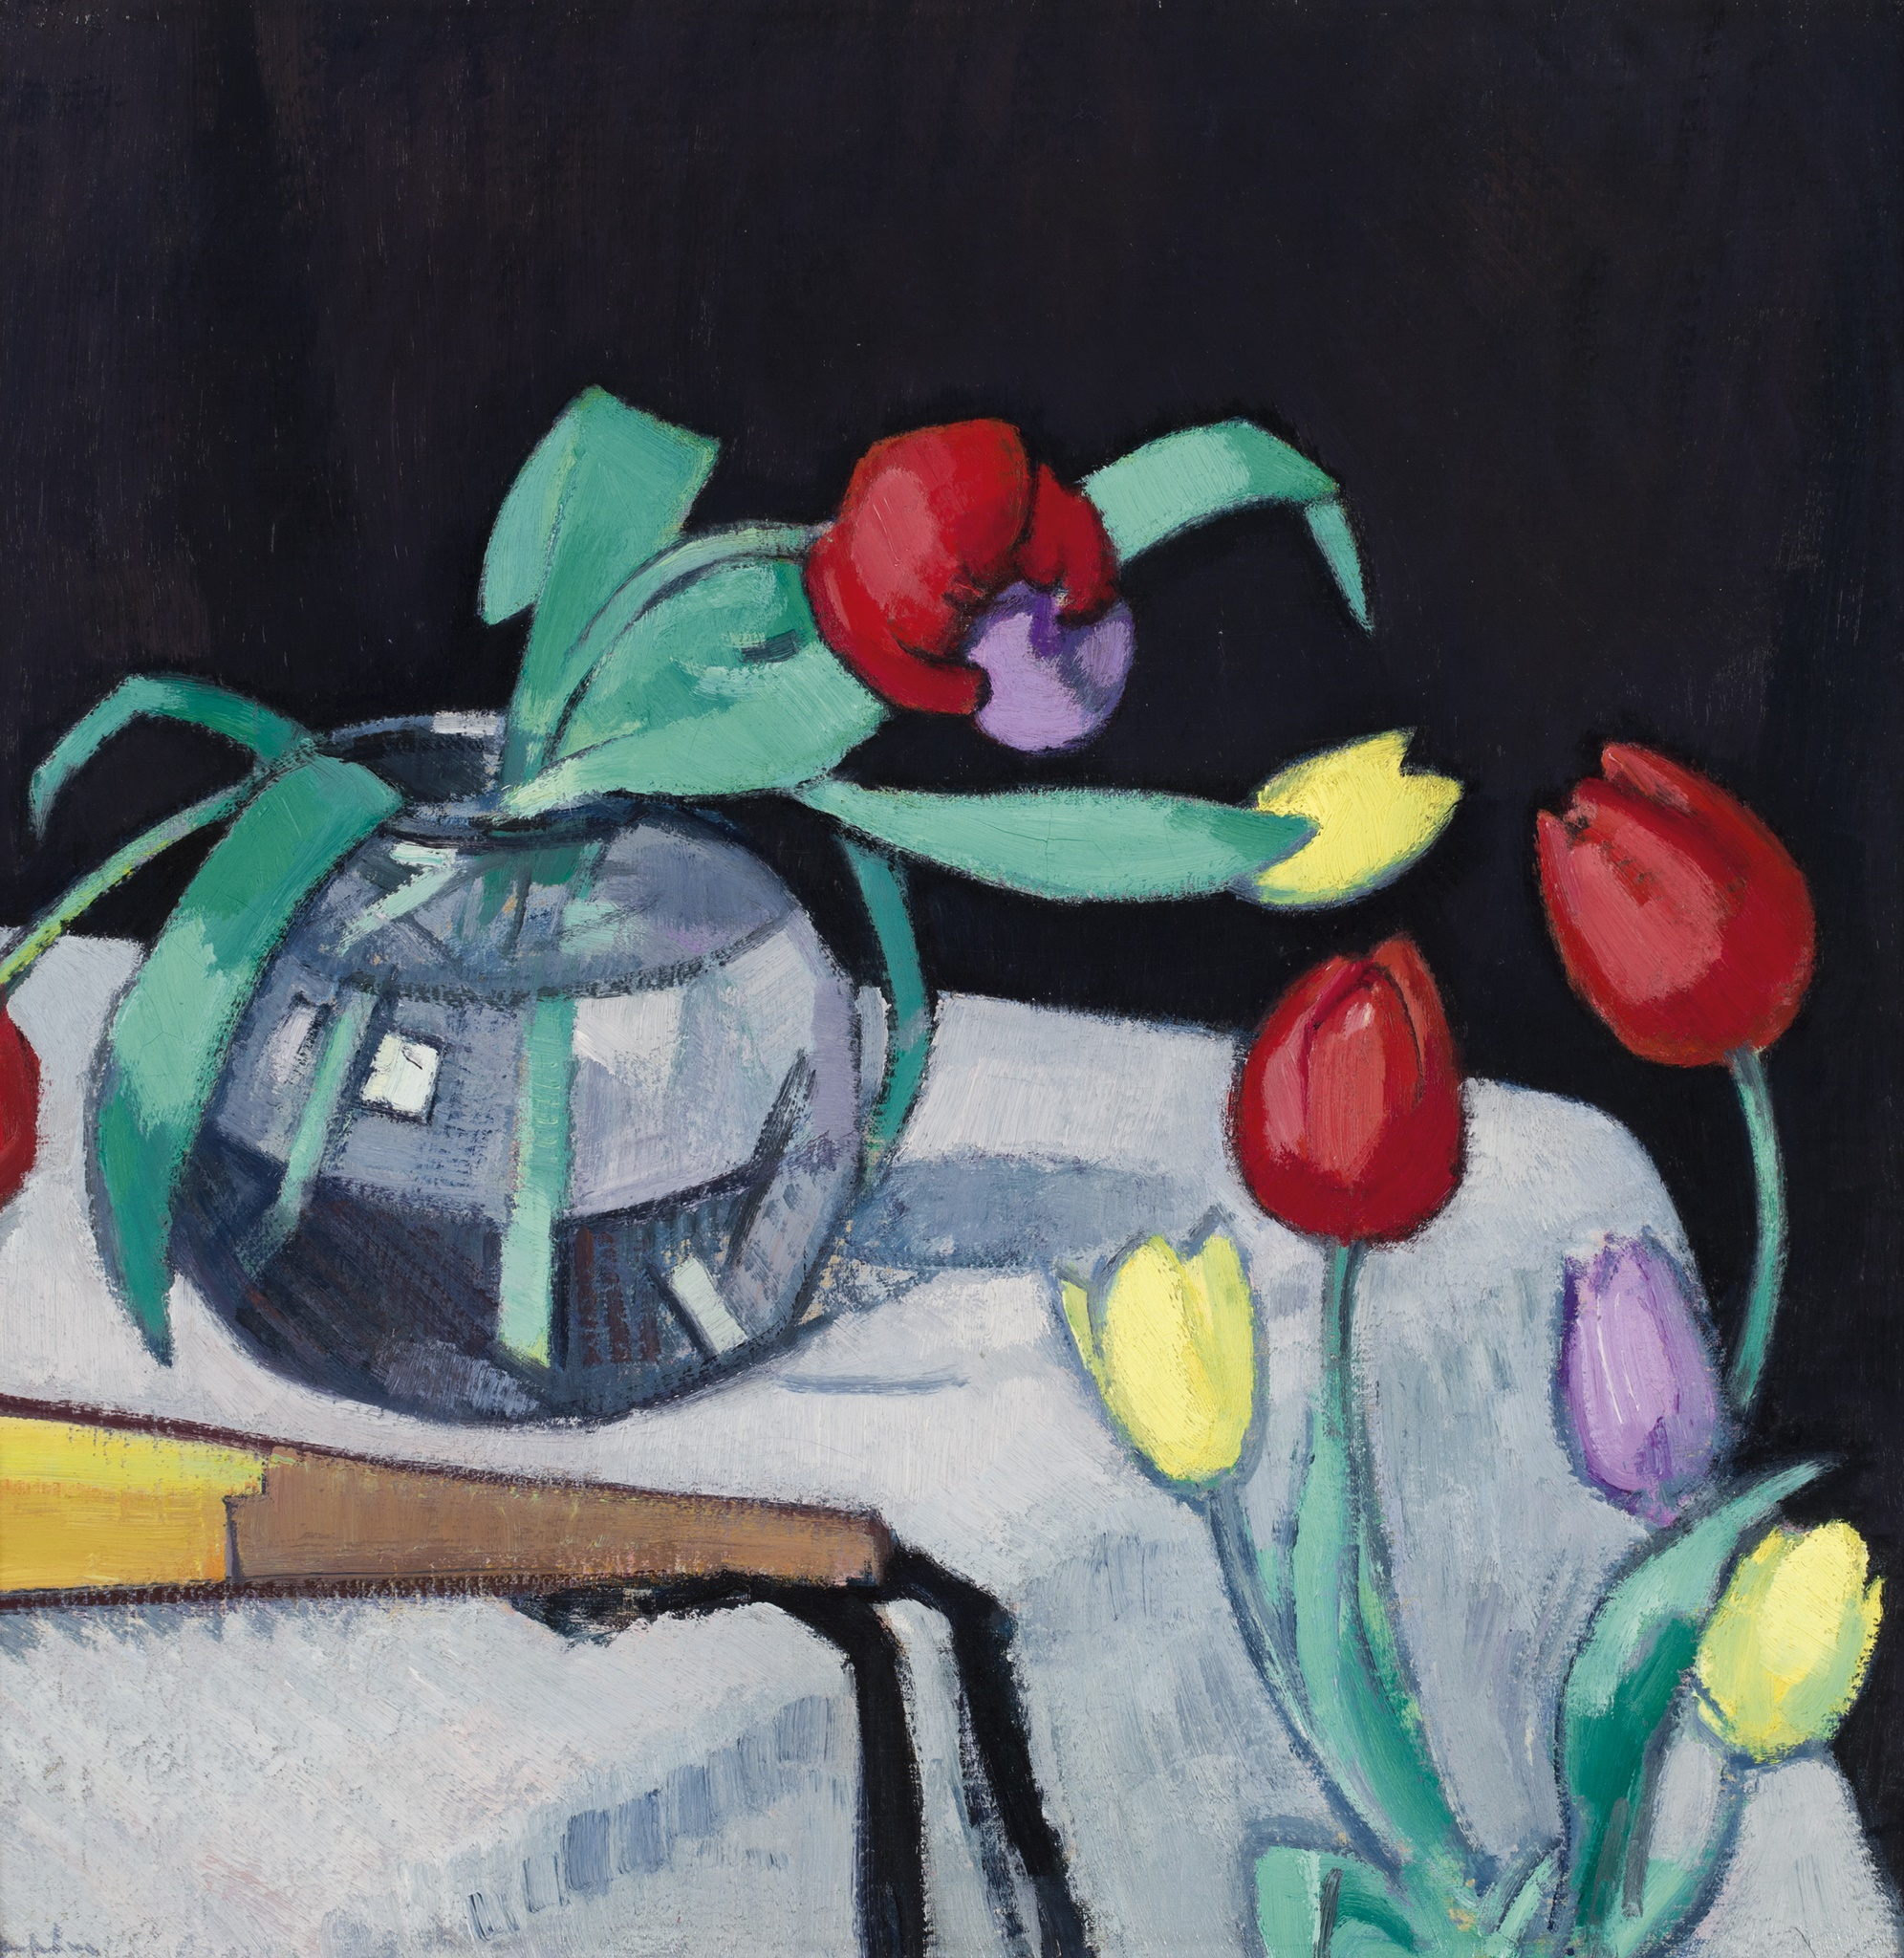 SAMUEL JOHN PEPLOE | STILL LIFE WITH TULIPS ON A BLACK BACKGROUND